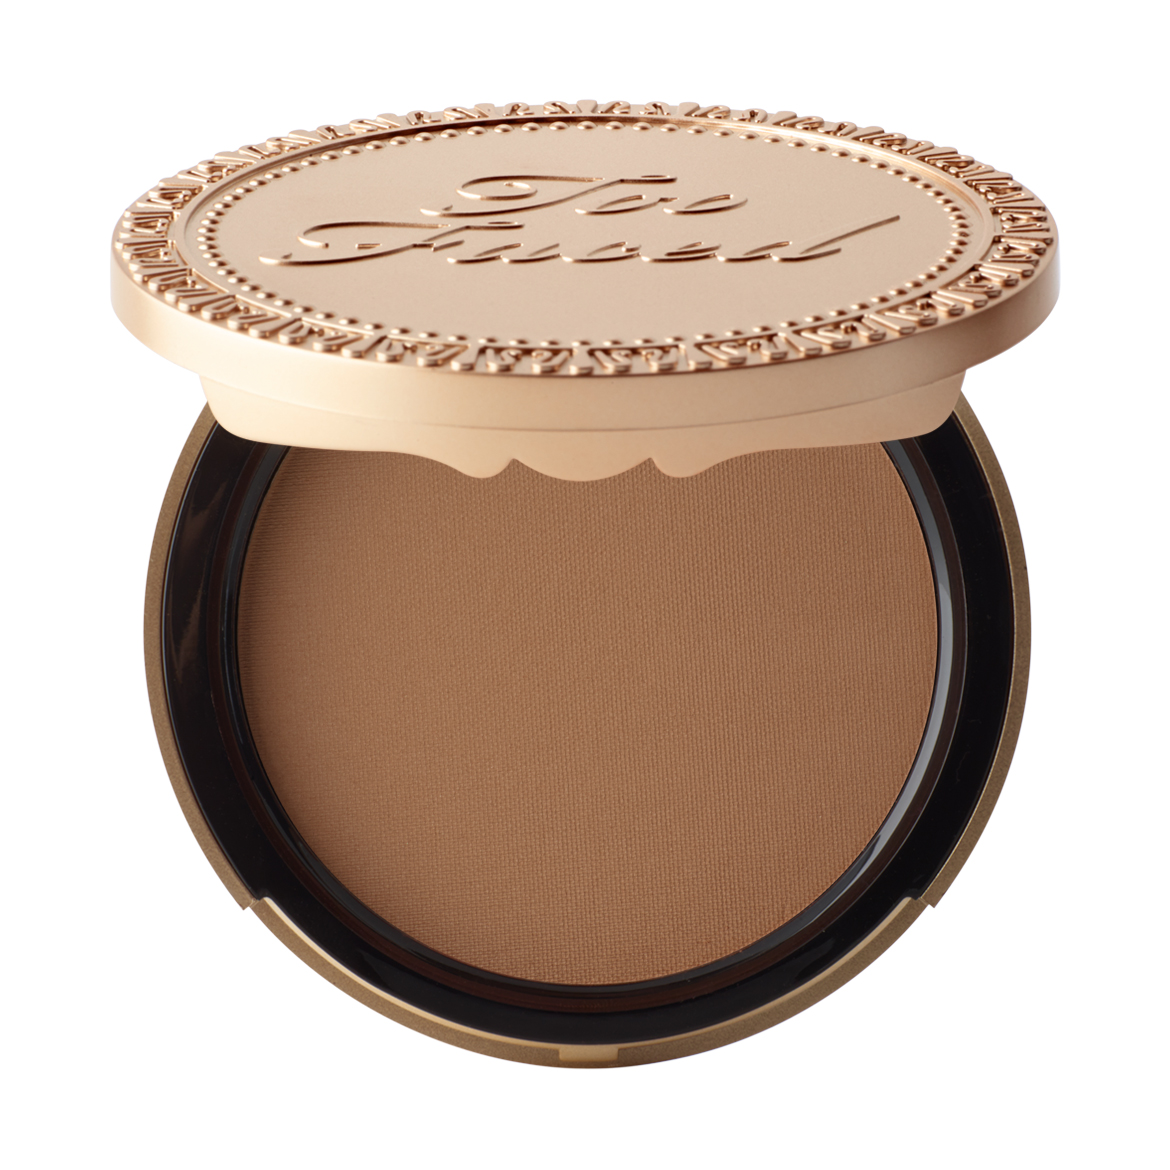 web chocolatesoleil open Beauty Insider: The 6 Most Returned Products at Sephora